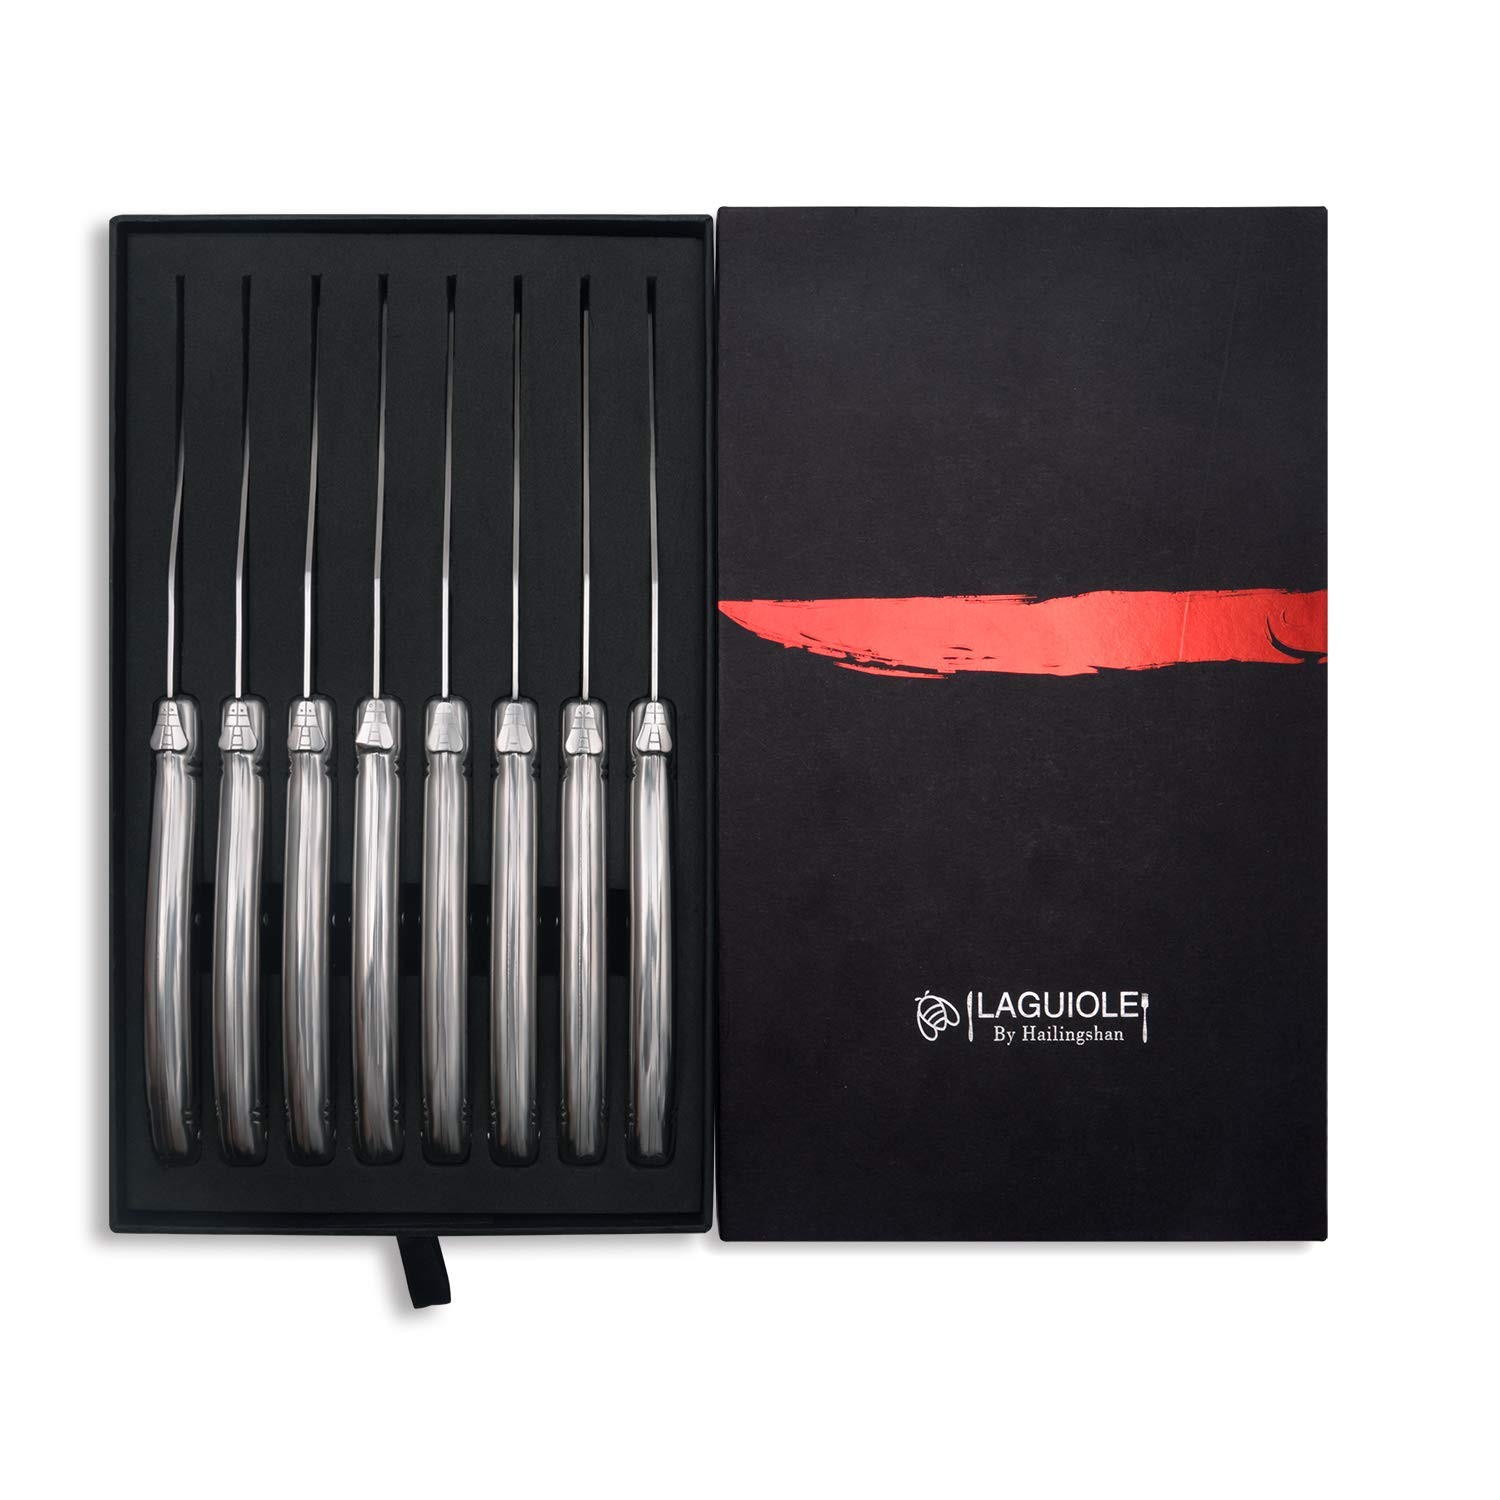 Lot 54 - Boxed Brand New Laguiloe Style By Hallingshan Set of 8 Steak Knifes RRP £49.99